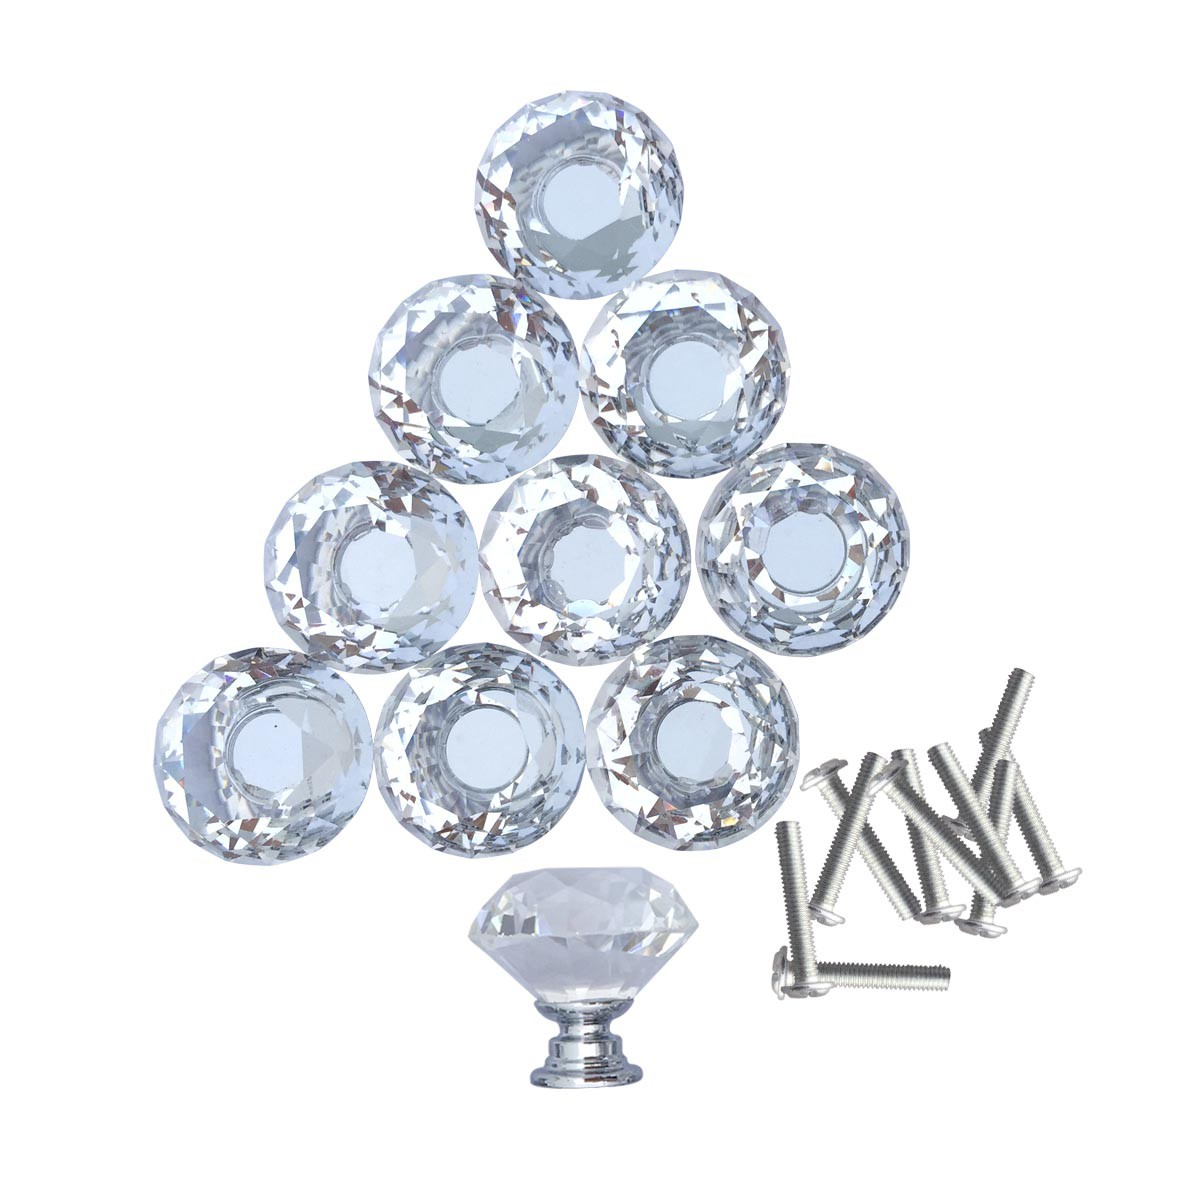 Clear Glass Cabinet Knobs 1.8 Inch Projection Mushroom 60 pcs Cabinet Hardware Cabinet Knobs Cabinet Knob